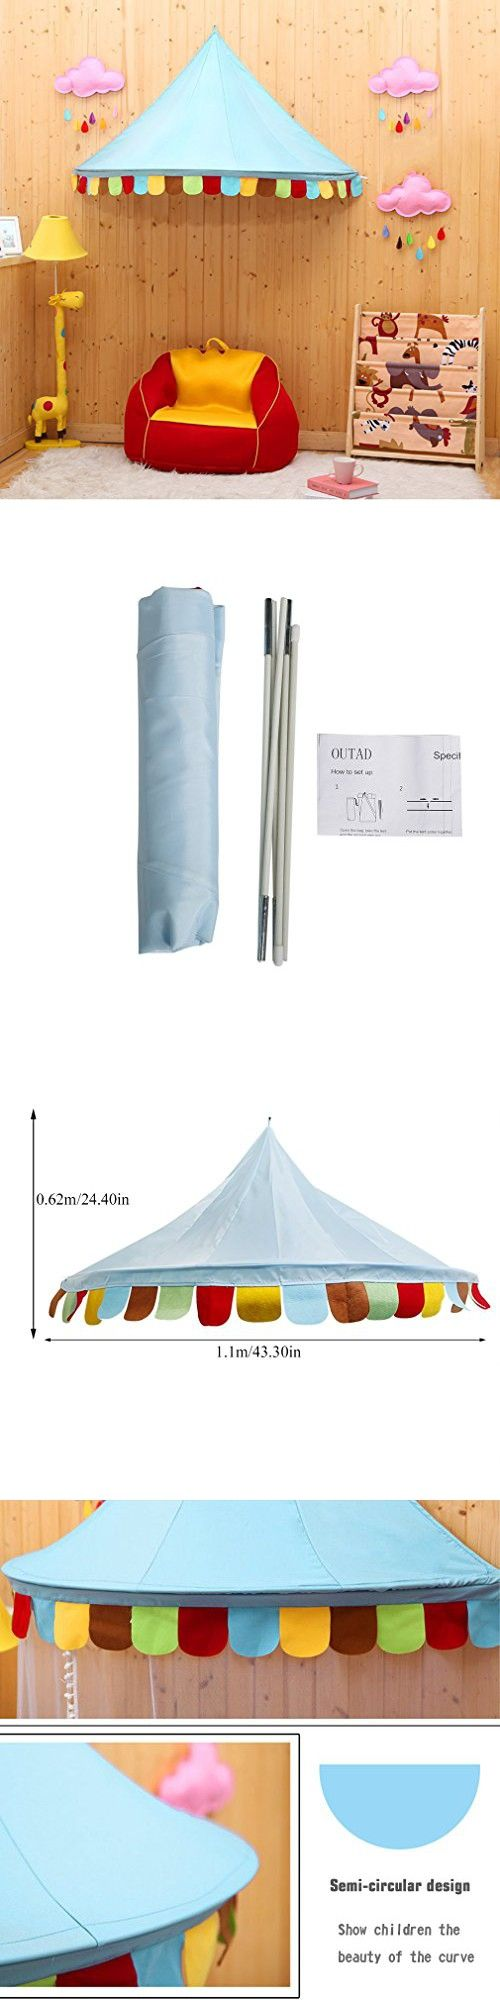 Bed Canopy, OUTAD Foldable Princess Rainbow Play Tent , Cute Style for Baby Kids Reading Play Tents (433124)